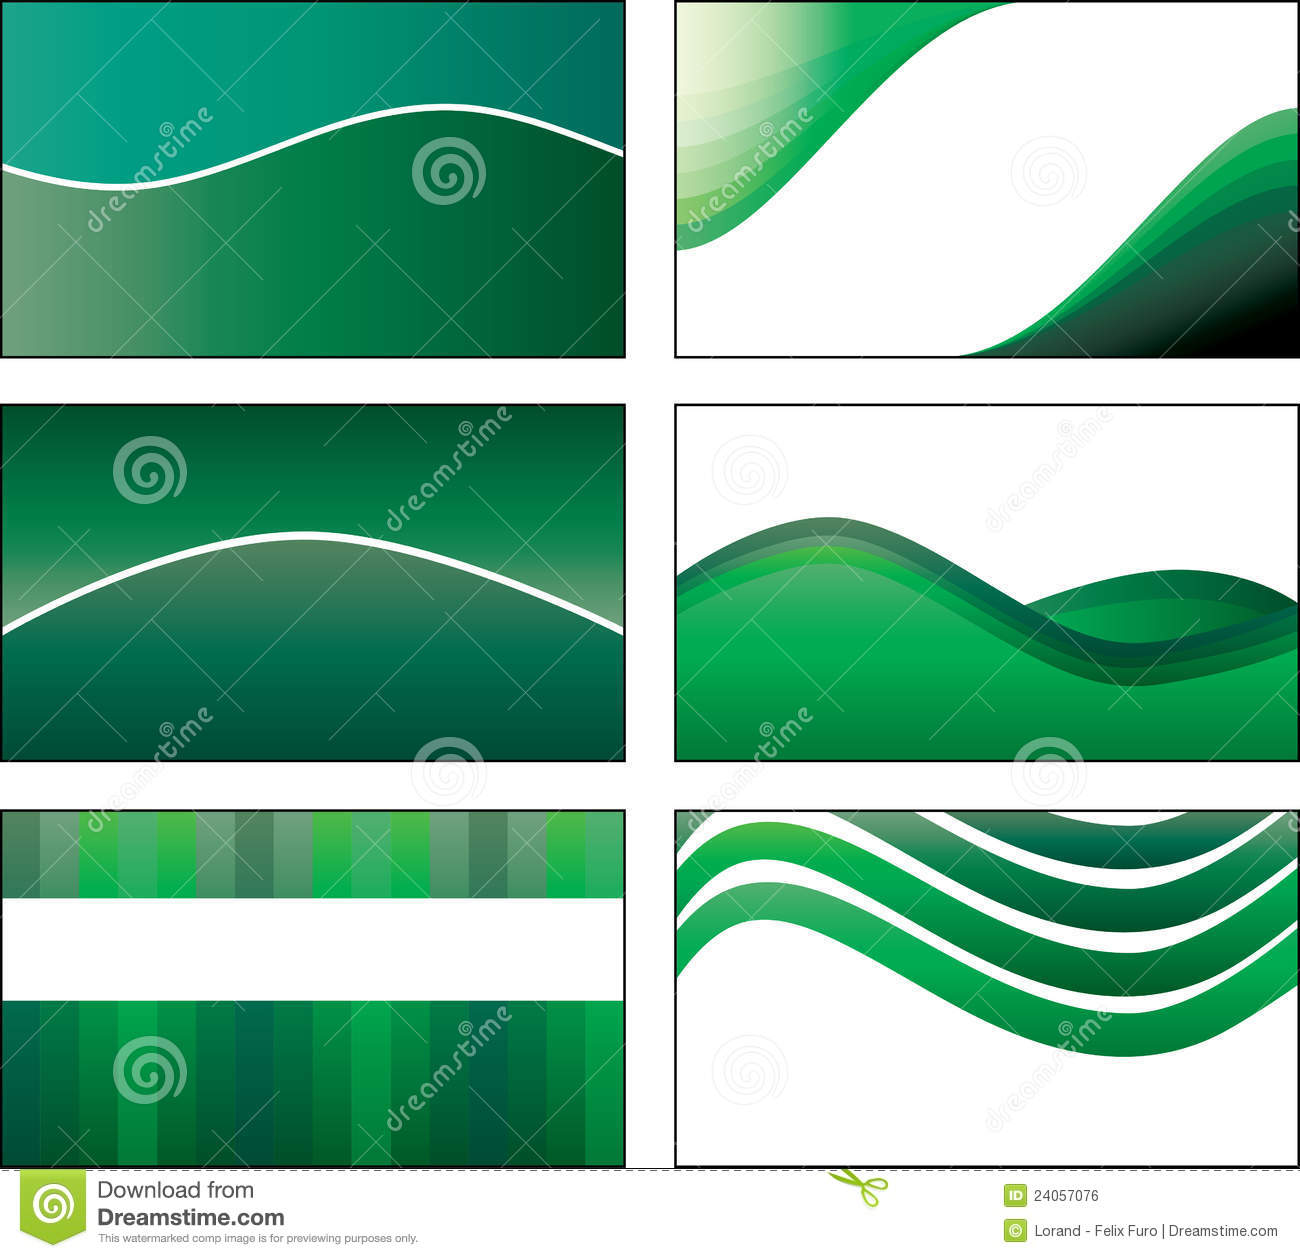 6 green business card template designs stock vector illustration 6 green business card template designs friedricerecipe Images